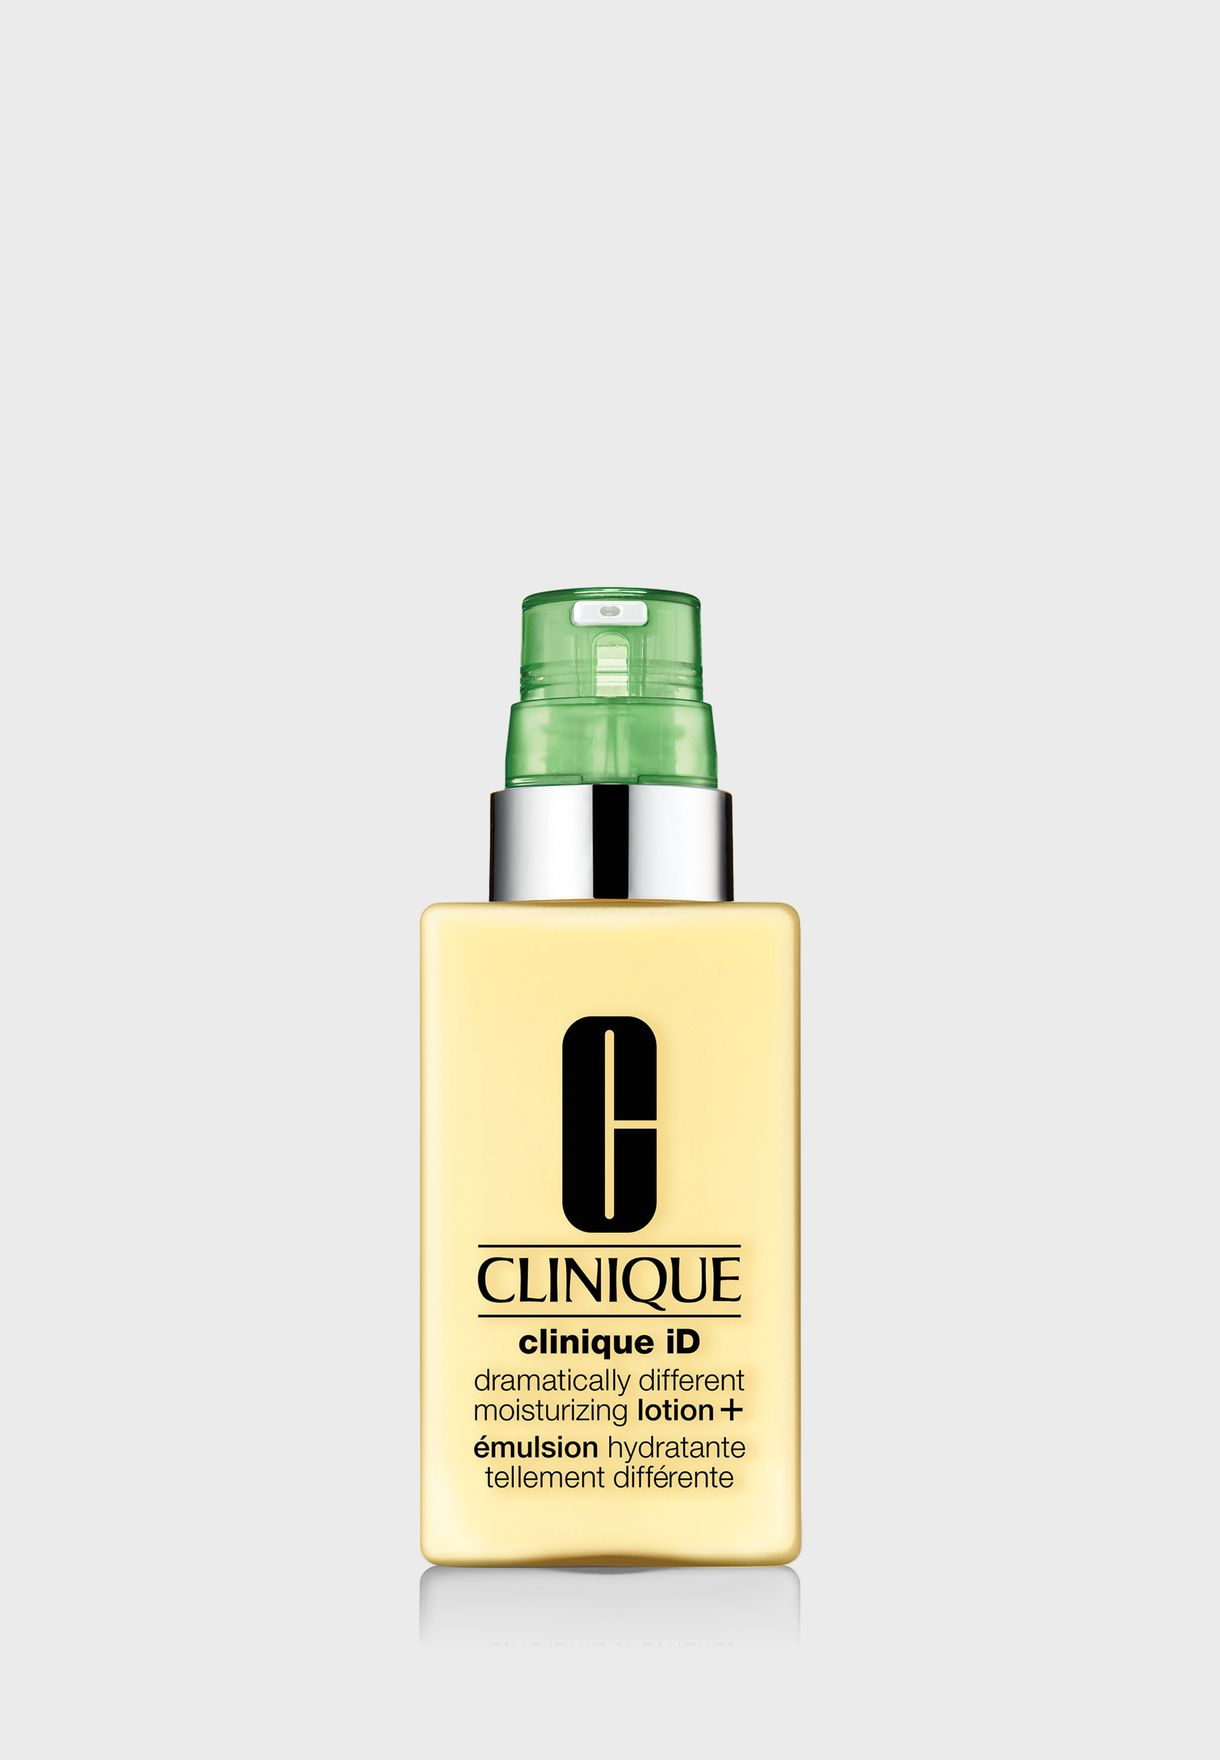 Clinique ID Moisturizing Lotion+ for Irritation